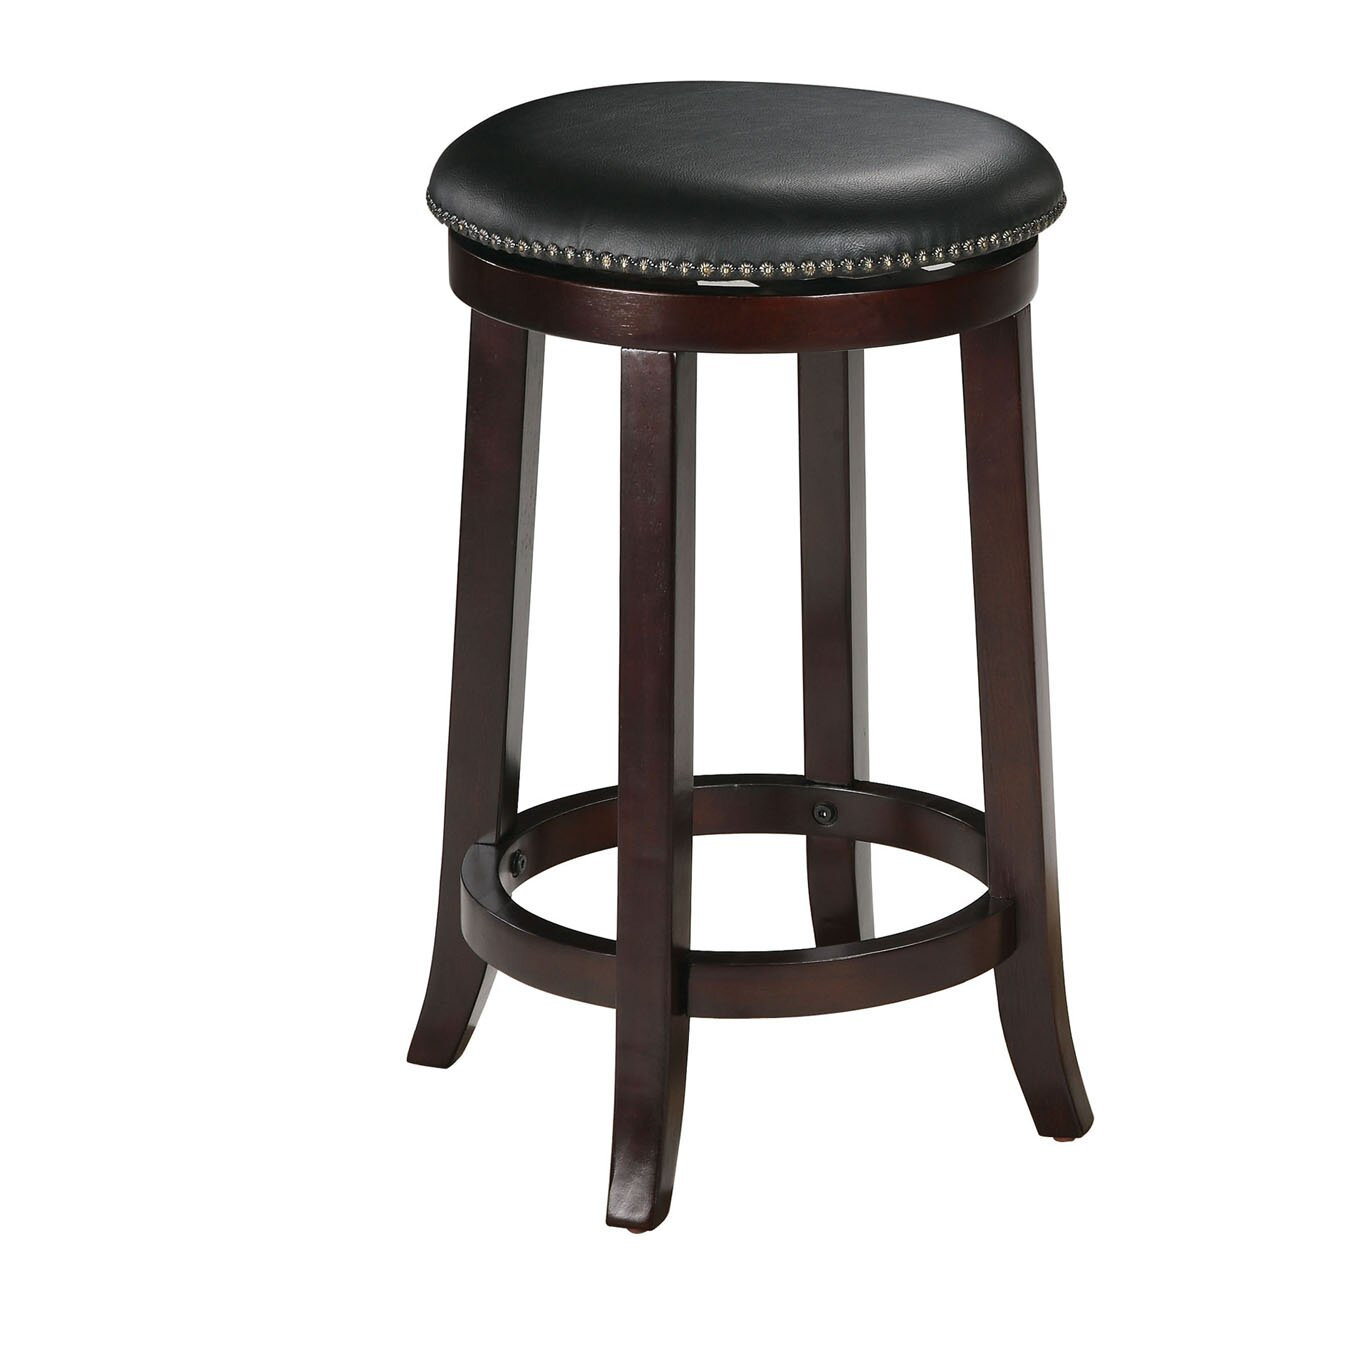 ACME Furniture Chelsea 29quot Swivel Bar Stool with Cushion  : ACME Furniture Chelsea 29 Swivel Bar Stool with Cushion from www.wayfair.com size 1368 x 1368 jpeg 95kB